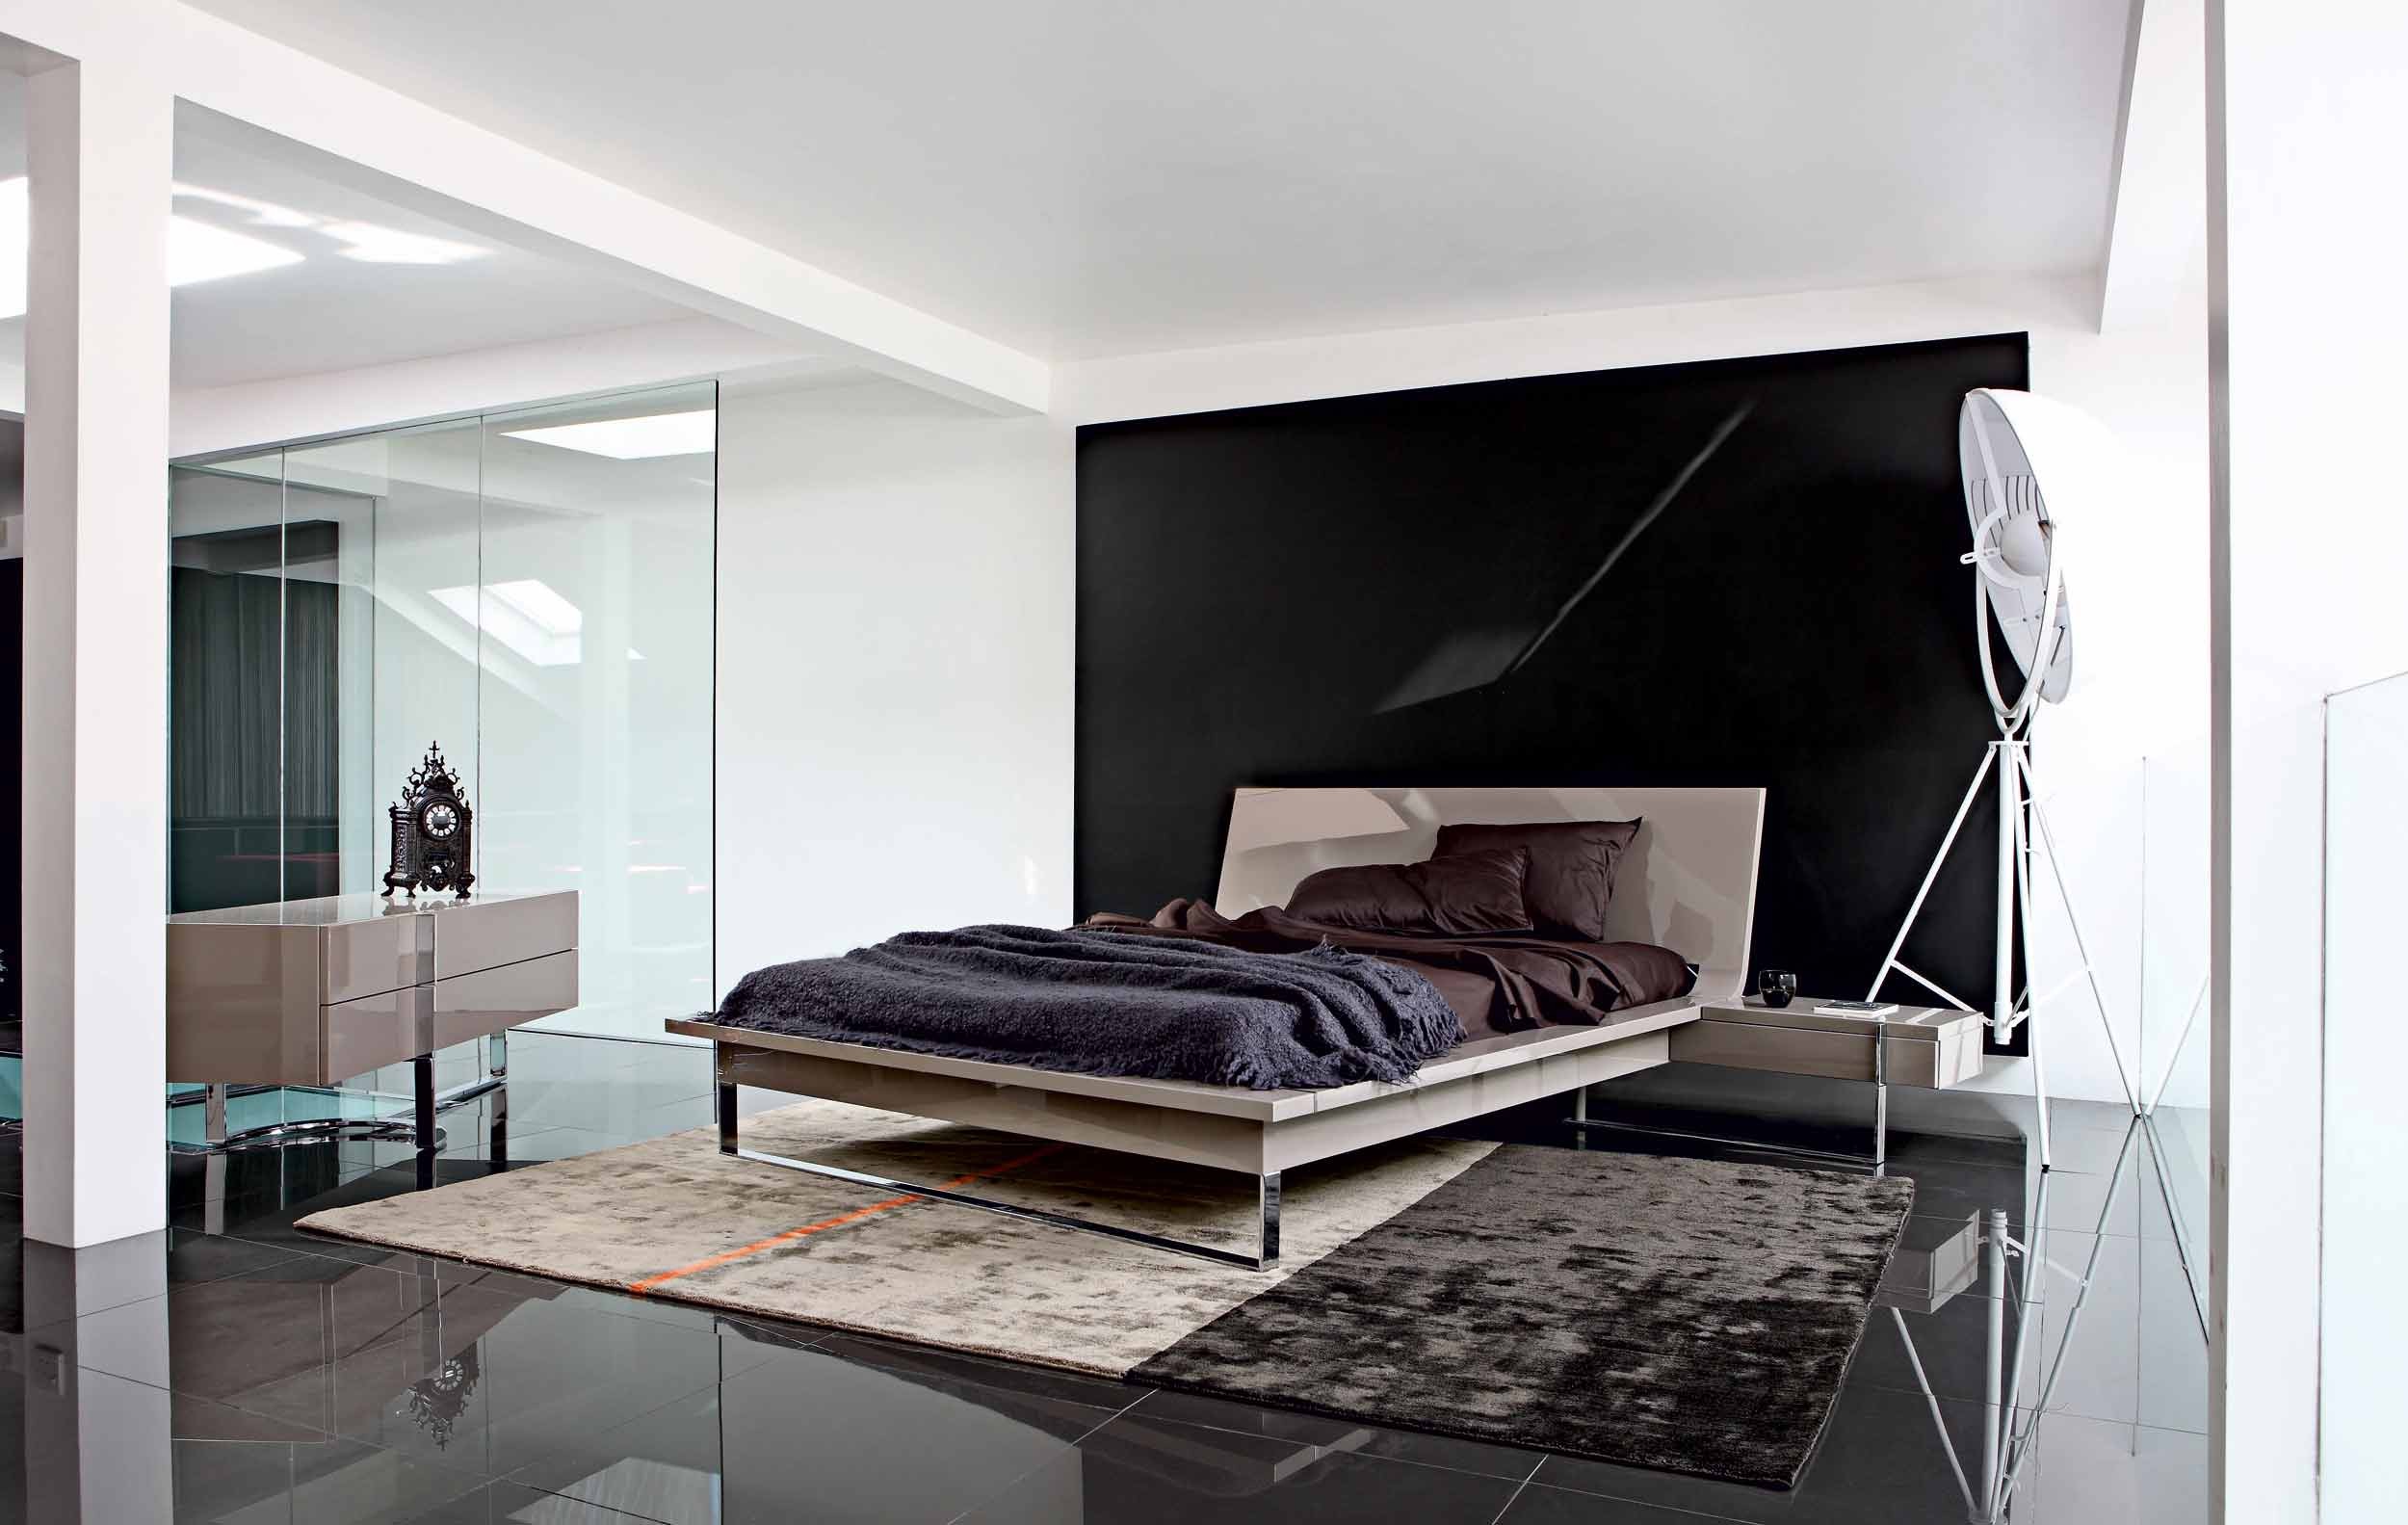 Minimalist bedroom interior design ideas for Minimalist bedding ideas